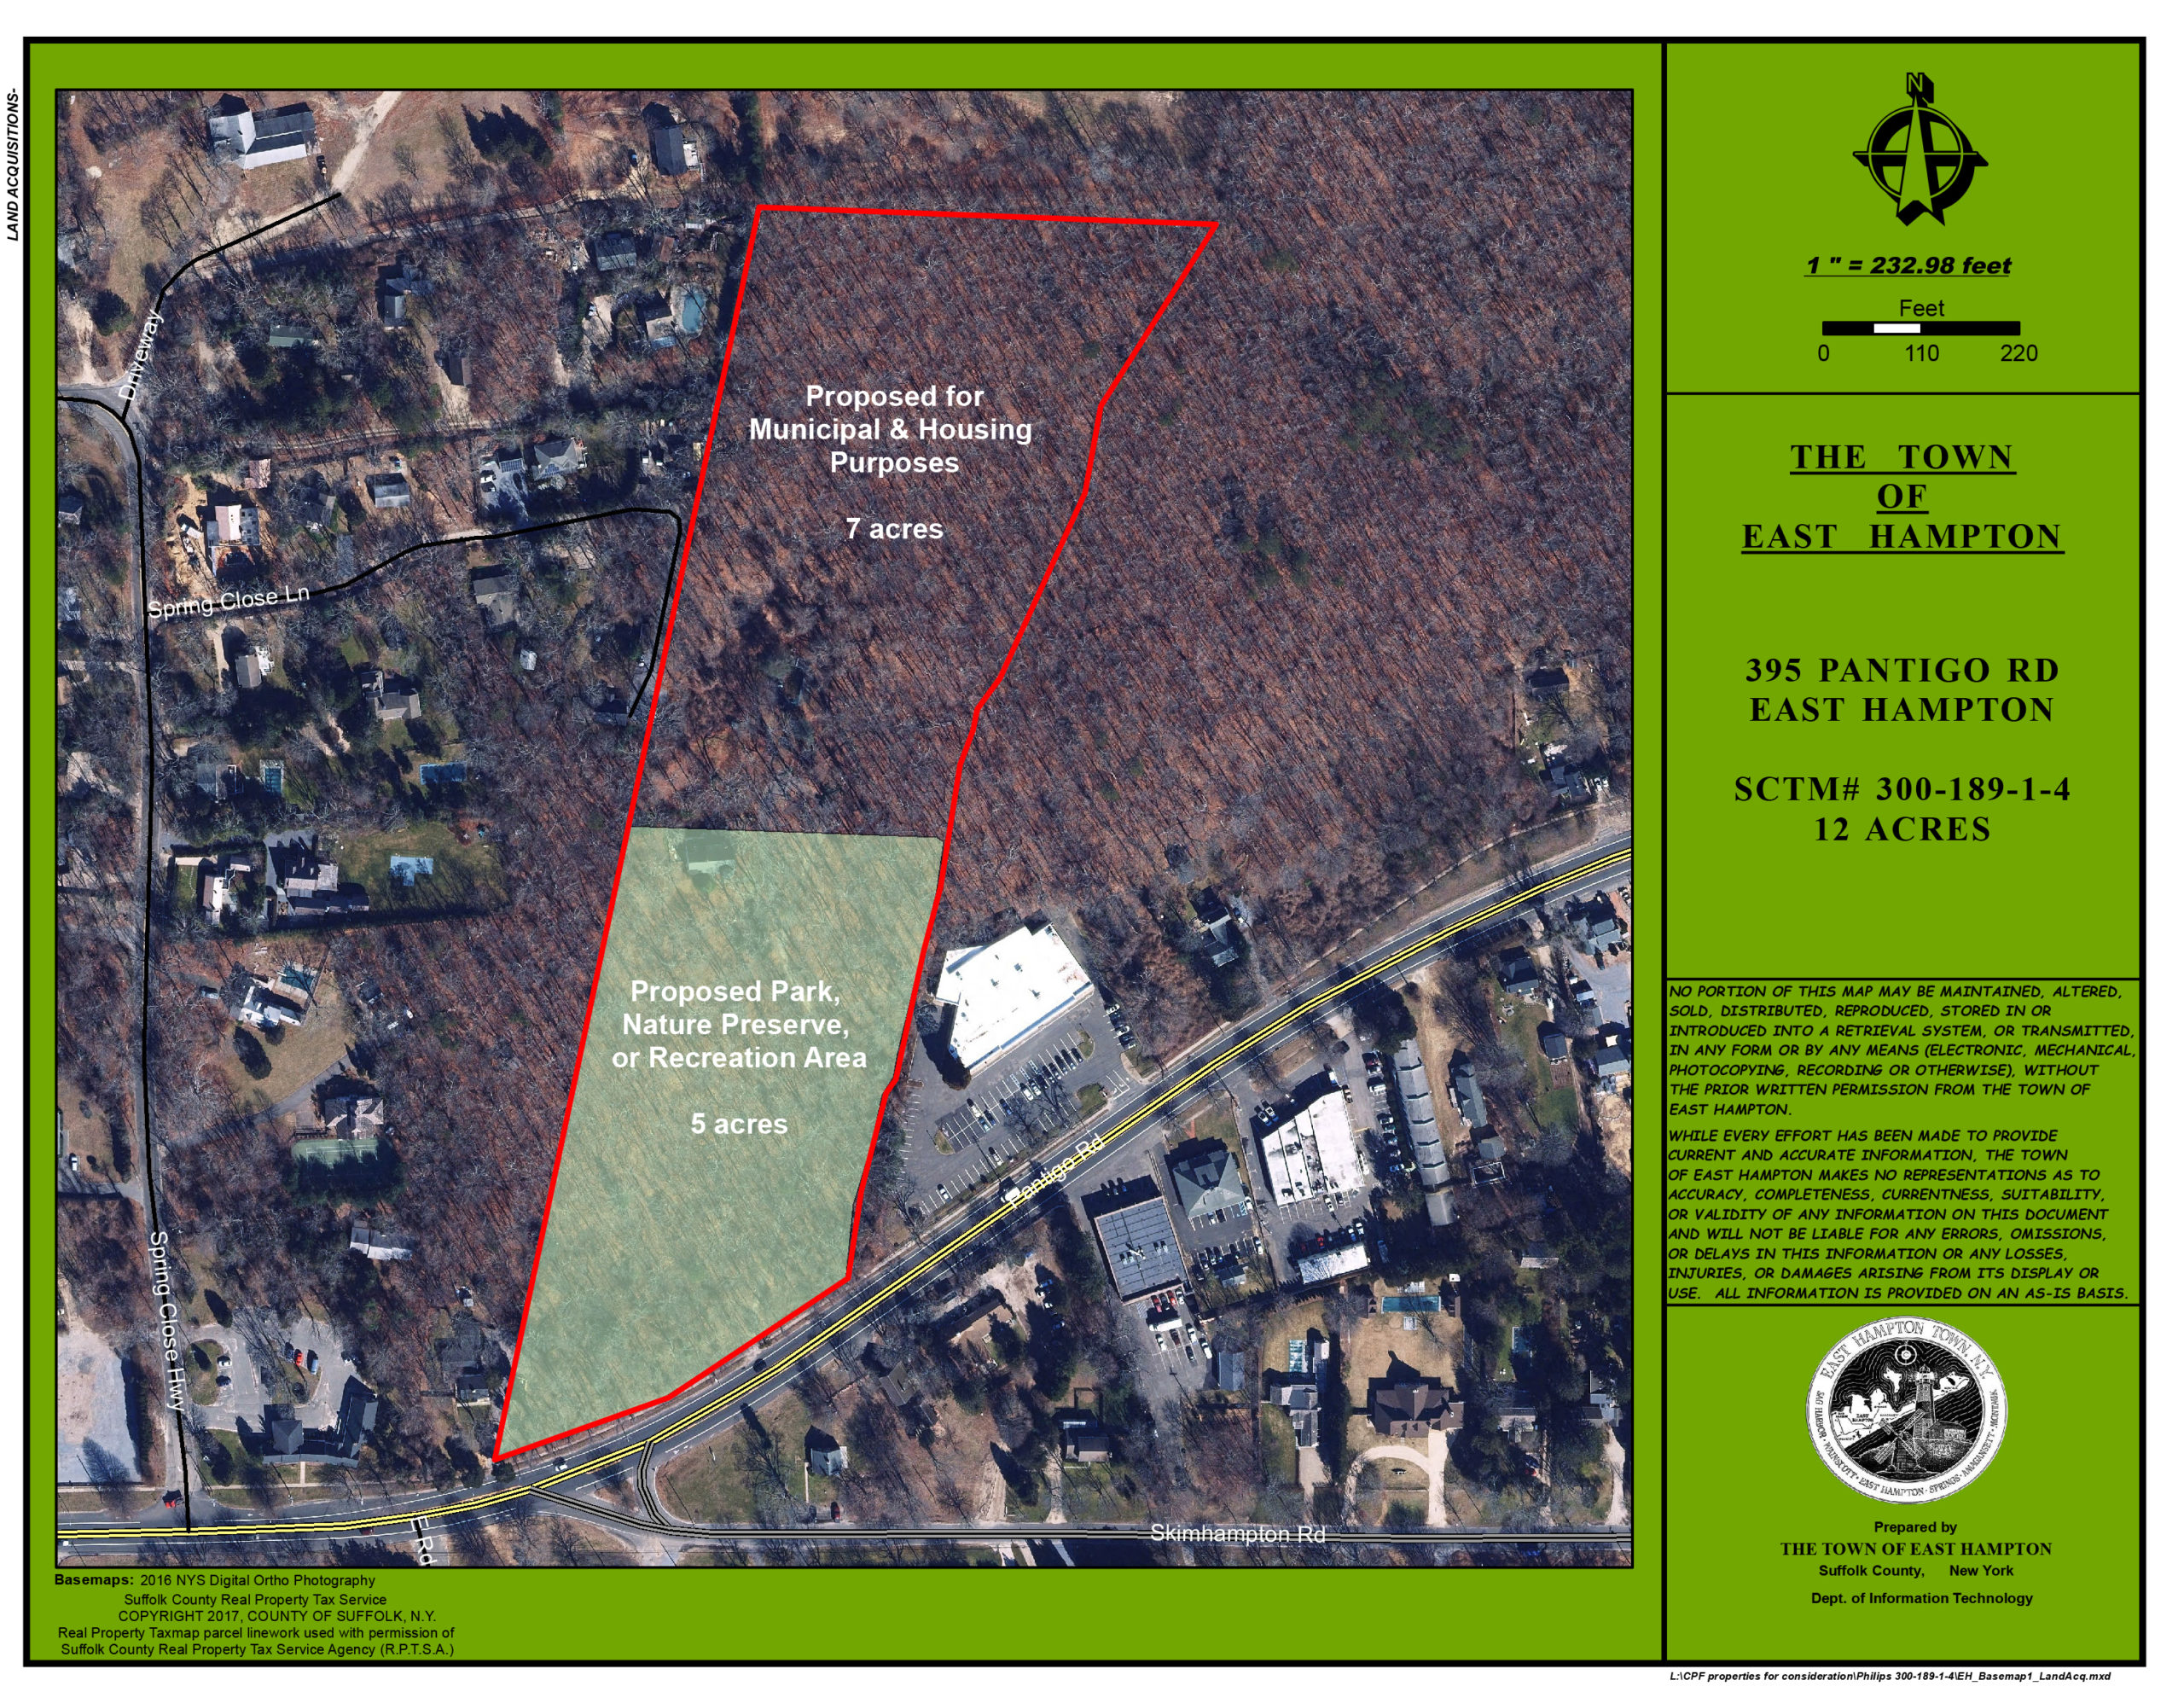 The town hopes to use about half of the 12 acres of land it purchased in 2019 off Pantigo Road for affordable housing, while leaving the other half as open space.